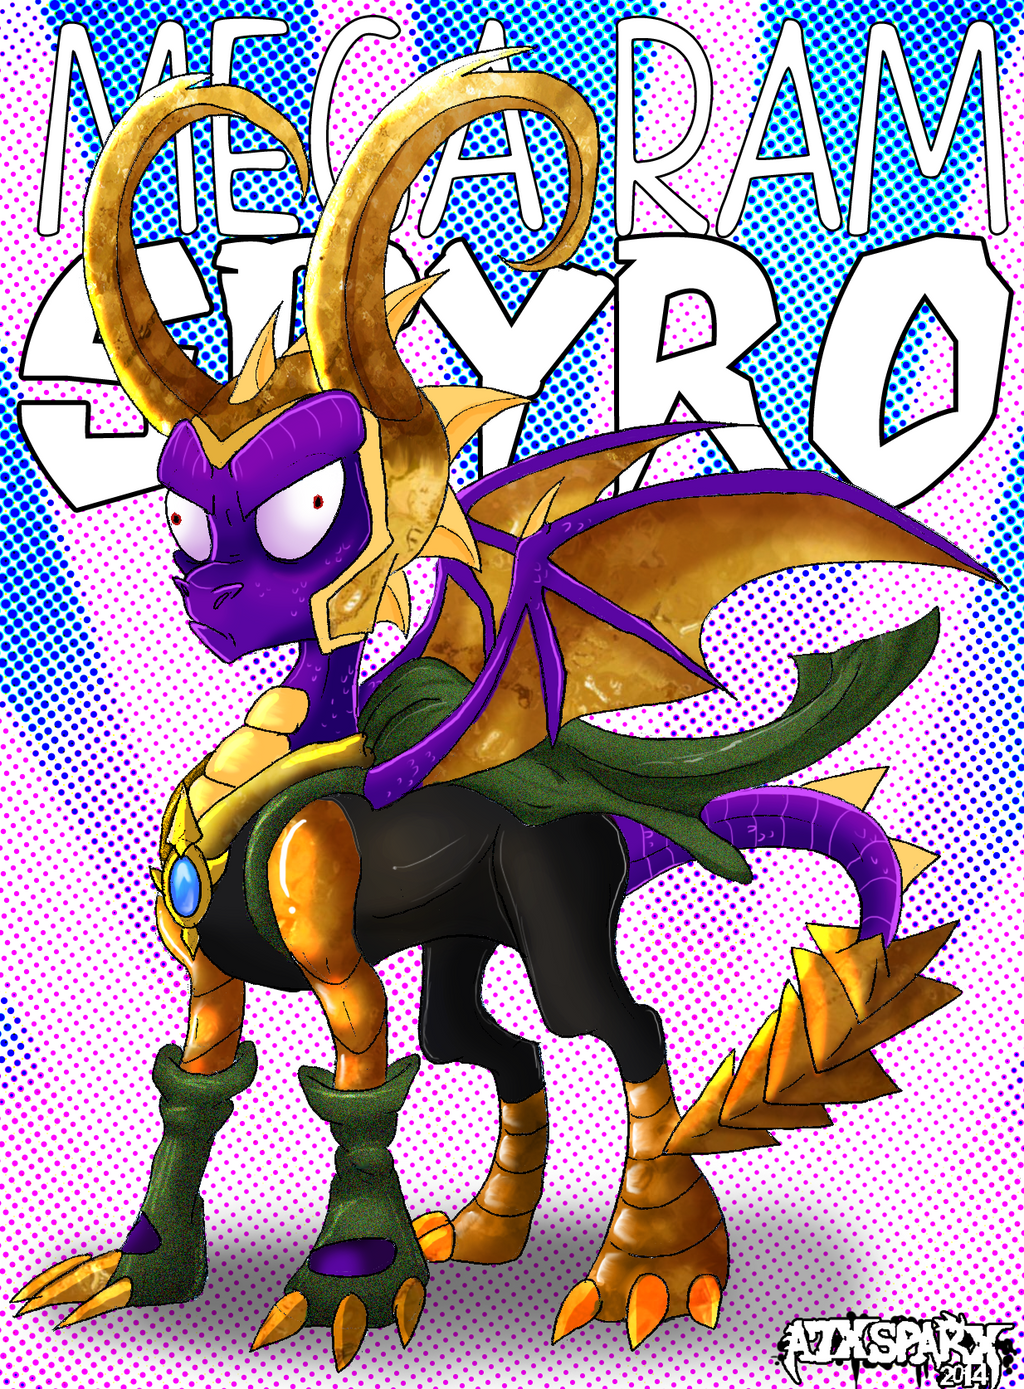 LOKI SPYRO TO THE RESCUE by A7XSparx